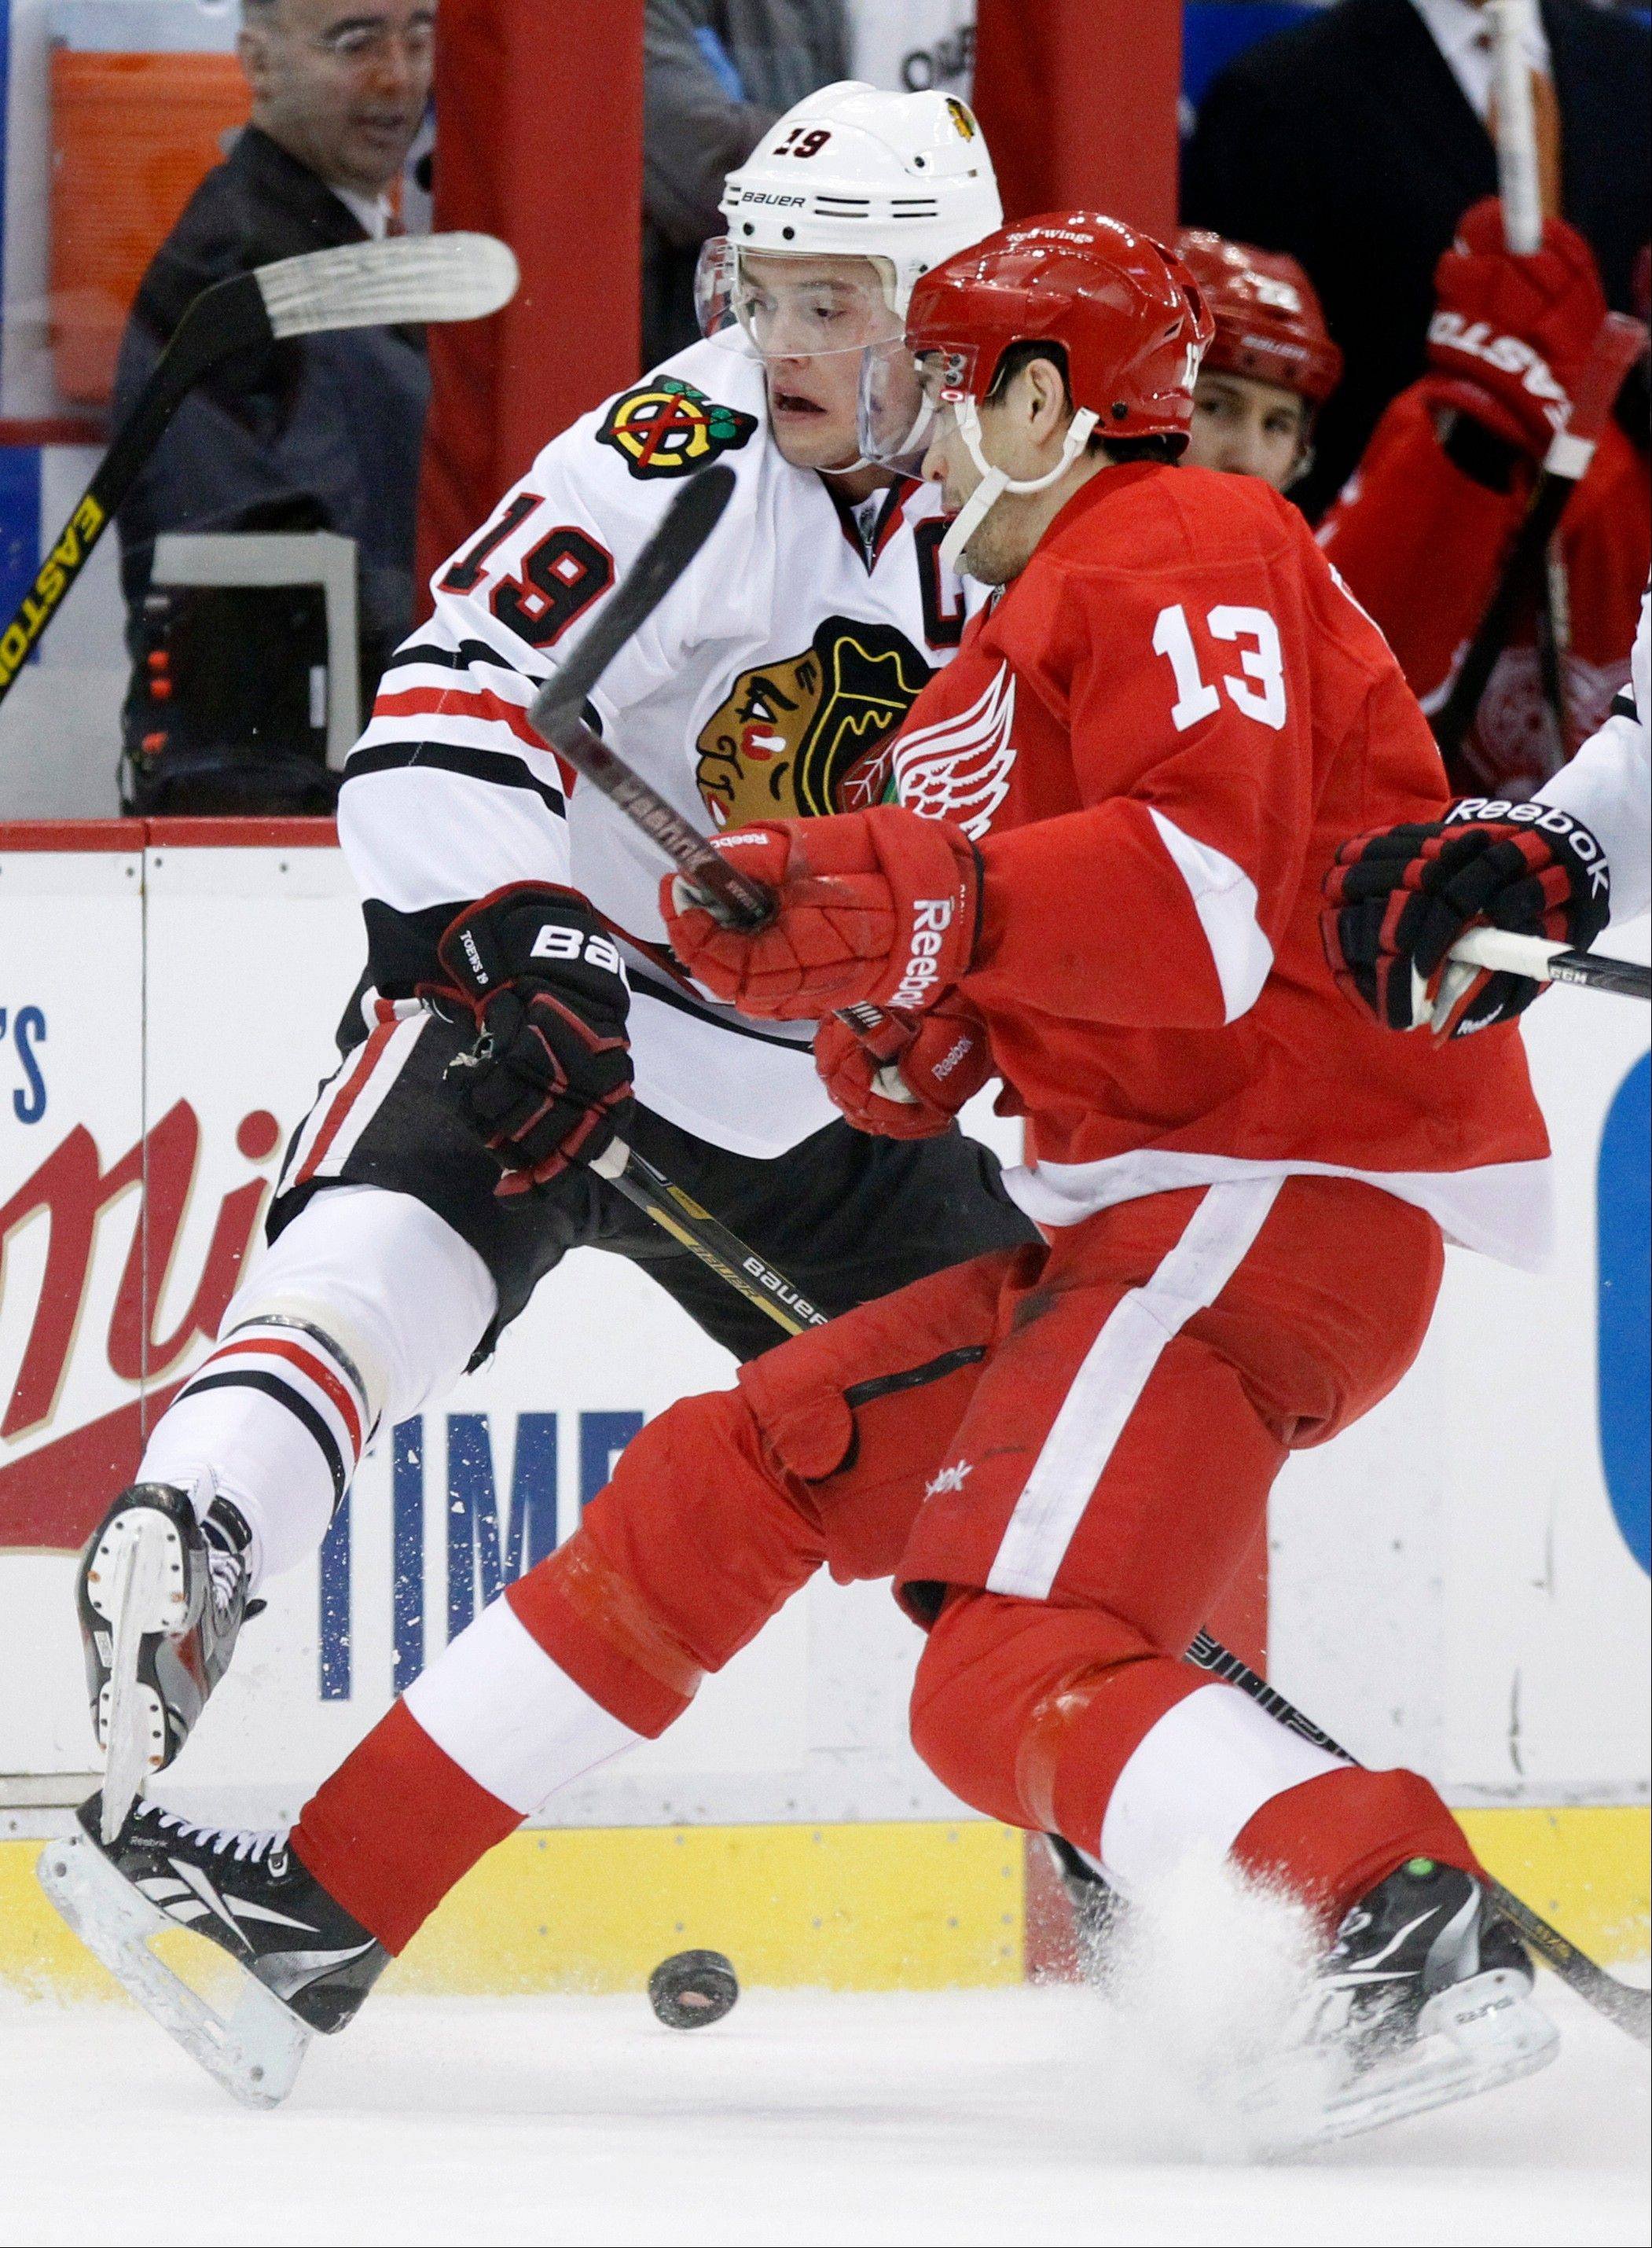 Stopping Detroit Red Wings center Pavel Datsyuk, here colliding with Blackhawks captain Jonathan Toews, will be one of the keys for the Hawks when they return to action at 7 p.m. Wednesday for Game 1 of their conference semifinals series at the United Center.